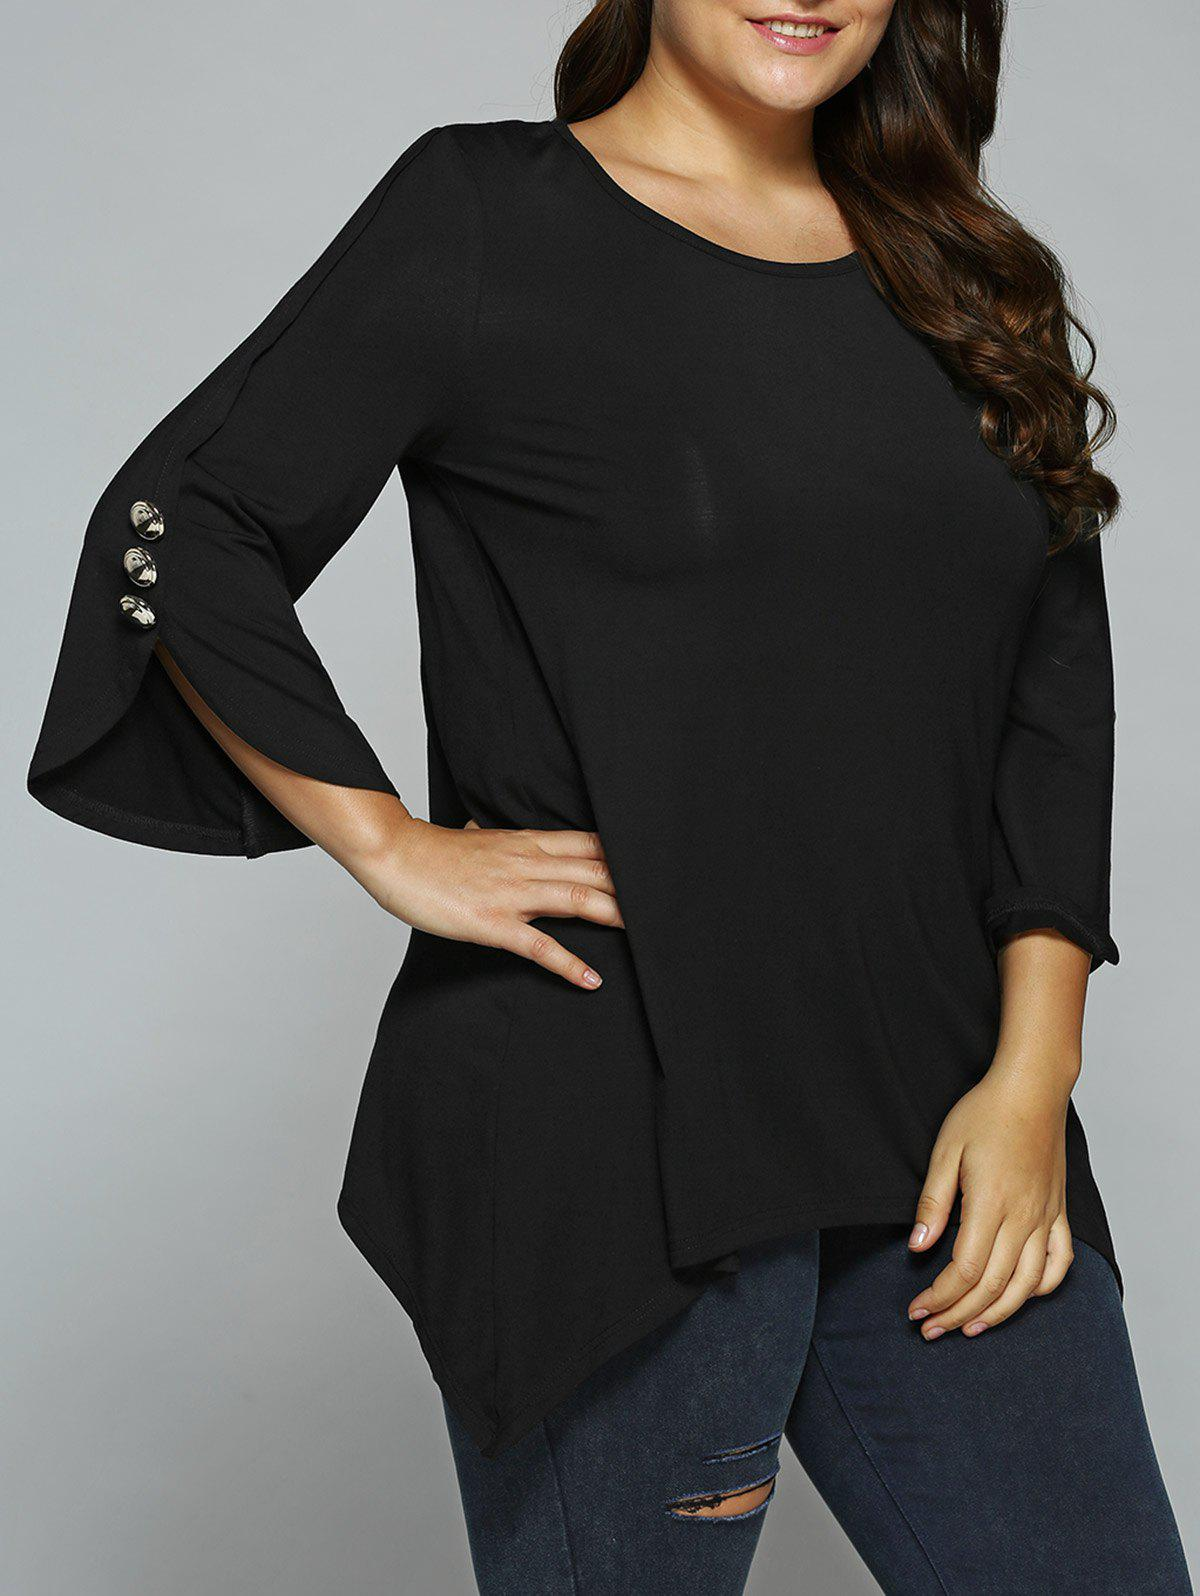 Button Embellished Sleeve Asymmetrical BlouseWOMEN<br><br>Size: 3XL; Color: BLACK; Material: Rayon,Spandex; Shirt Length: Regular; Sleeve Length: Three Quarter; Collar: Scoop Neck; Style: Casual; Season: Fall,Spring,Summer; Pattern Type: Solid; Weight: 0.360kg; Package Contents: 1 x Blouse;